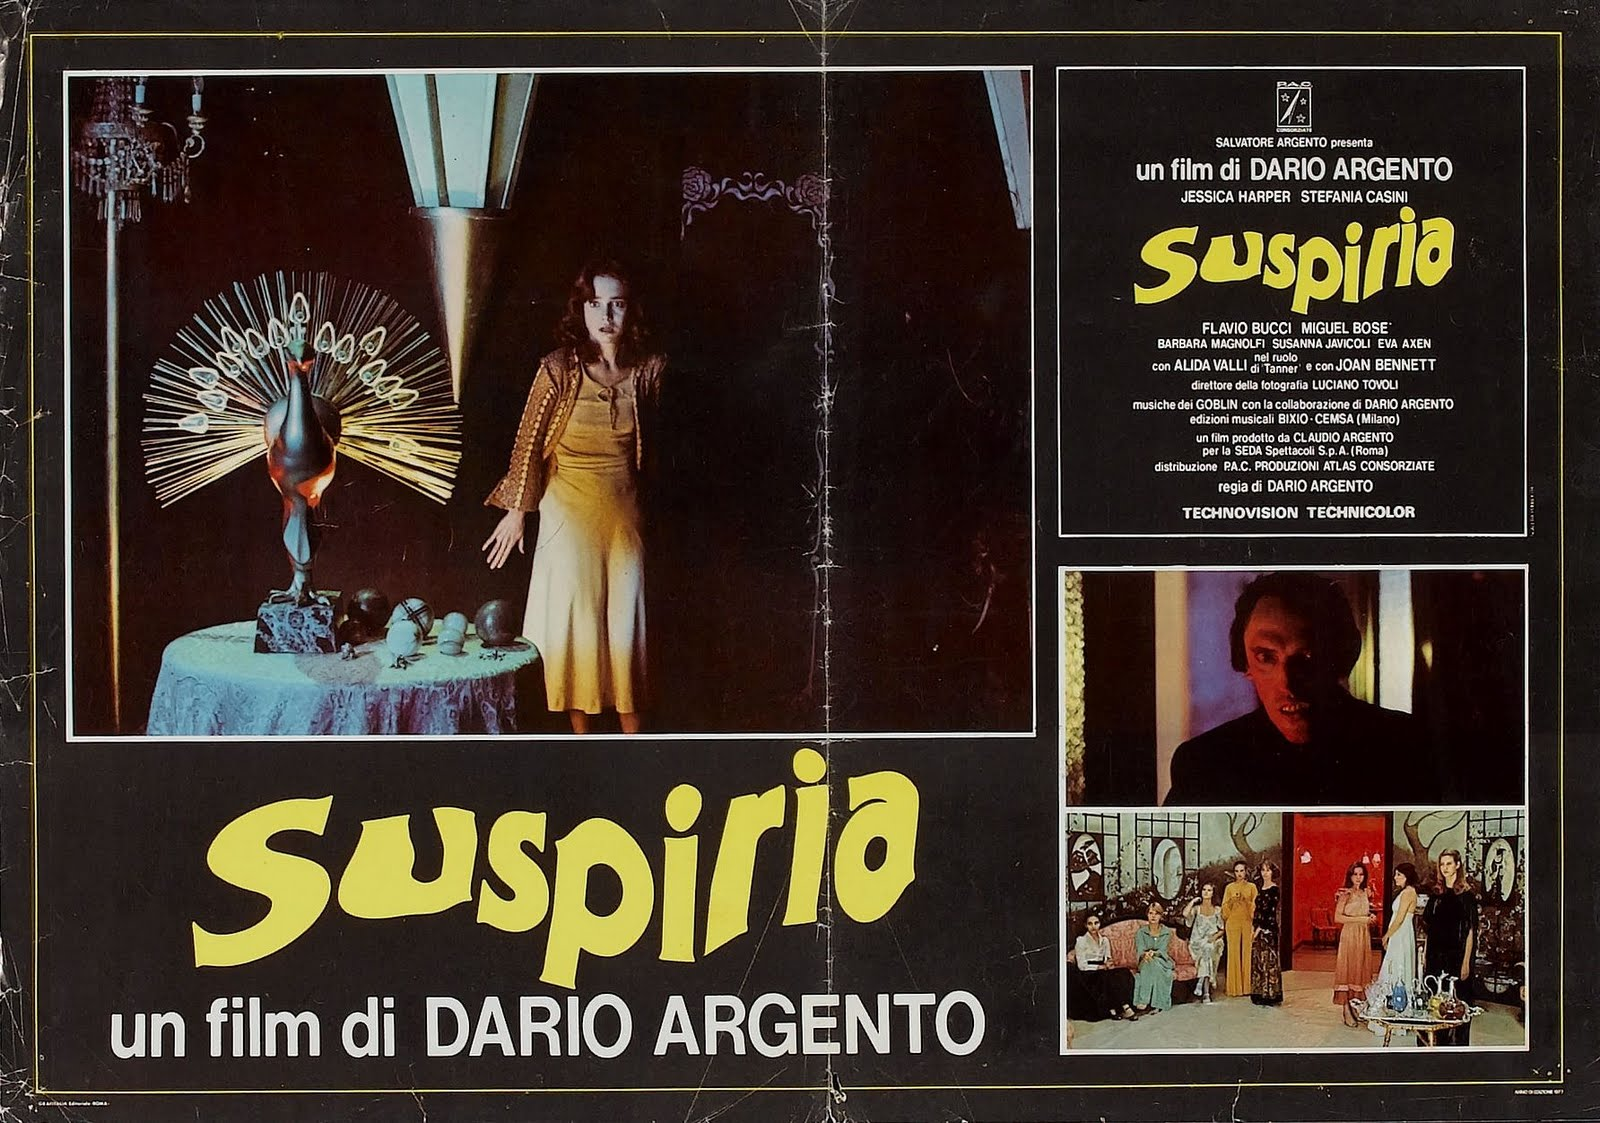 suspiria mediabook review